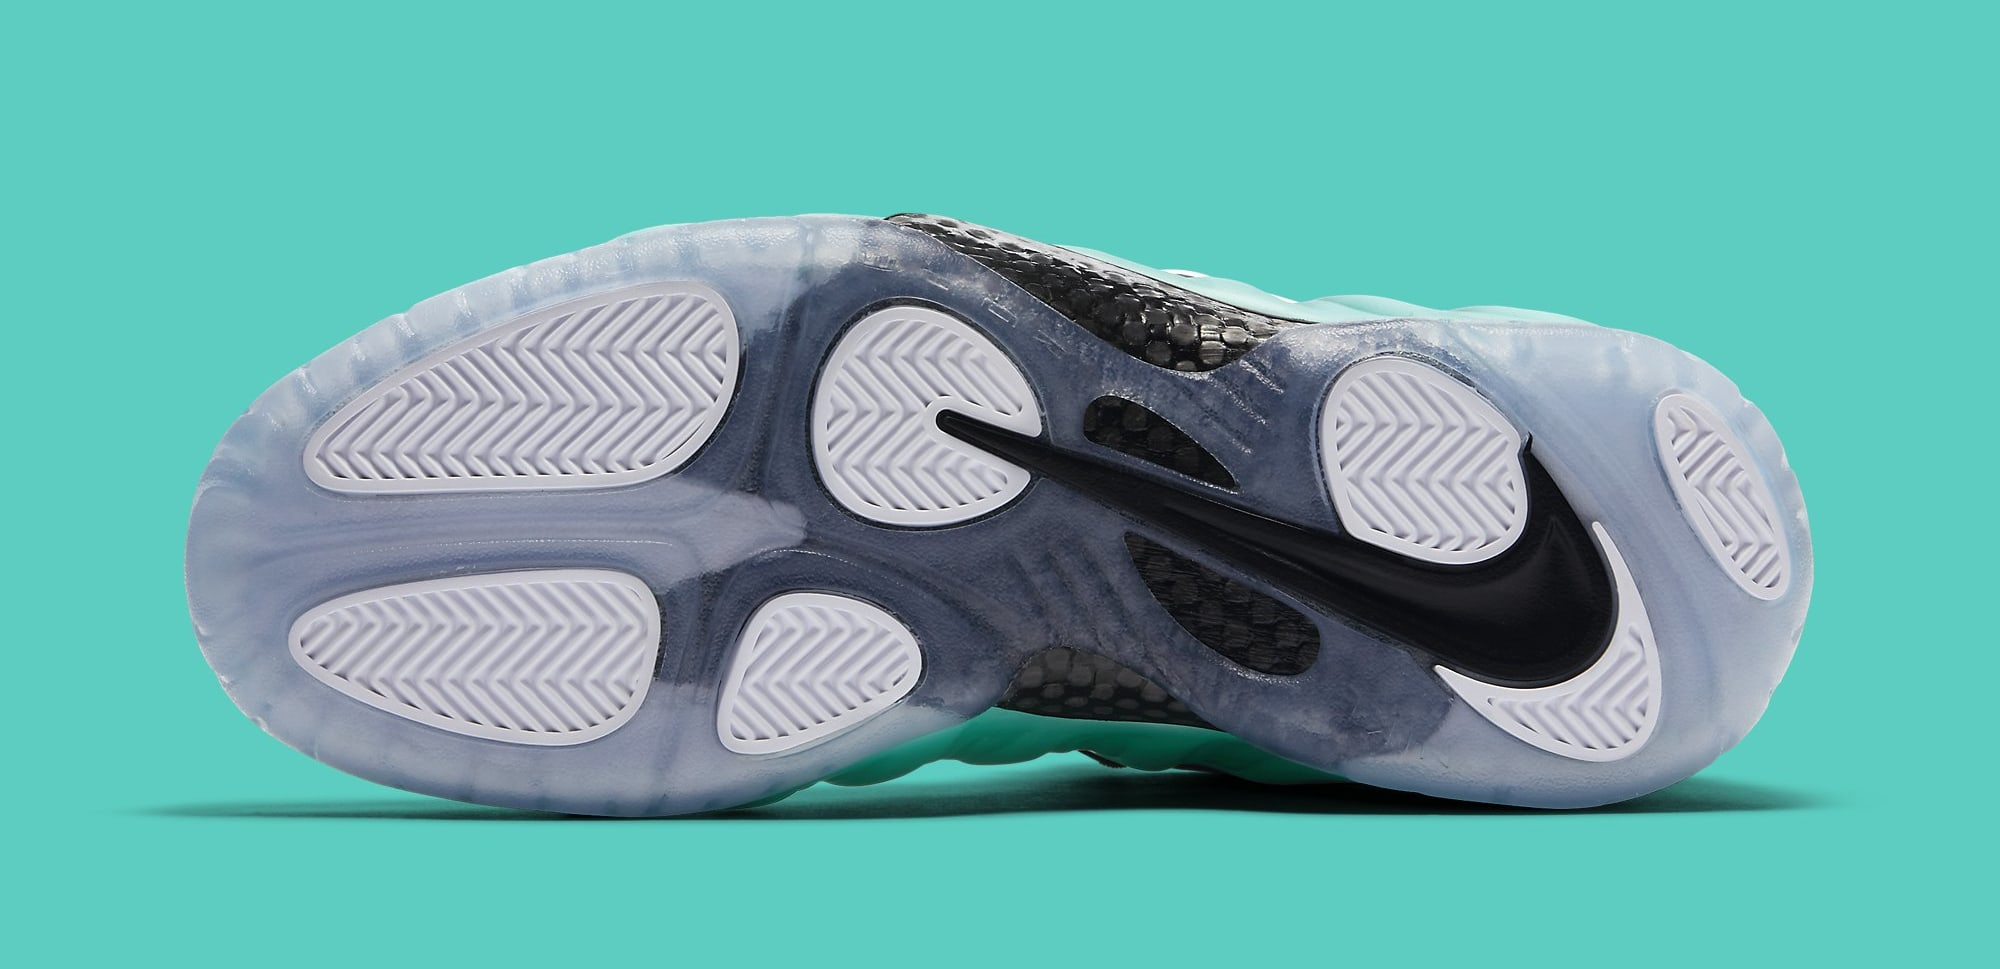 fadc86e388409 Nike Air Foamposite Pro Island Green Releases this Friday - Air 23 ...